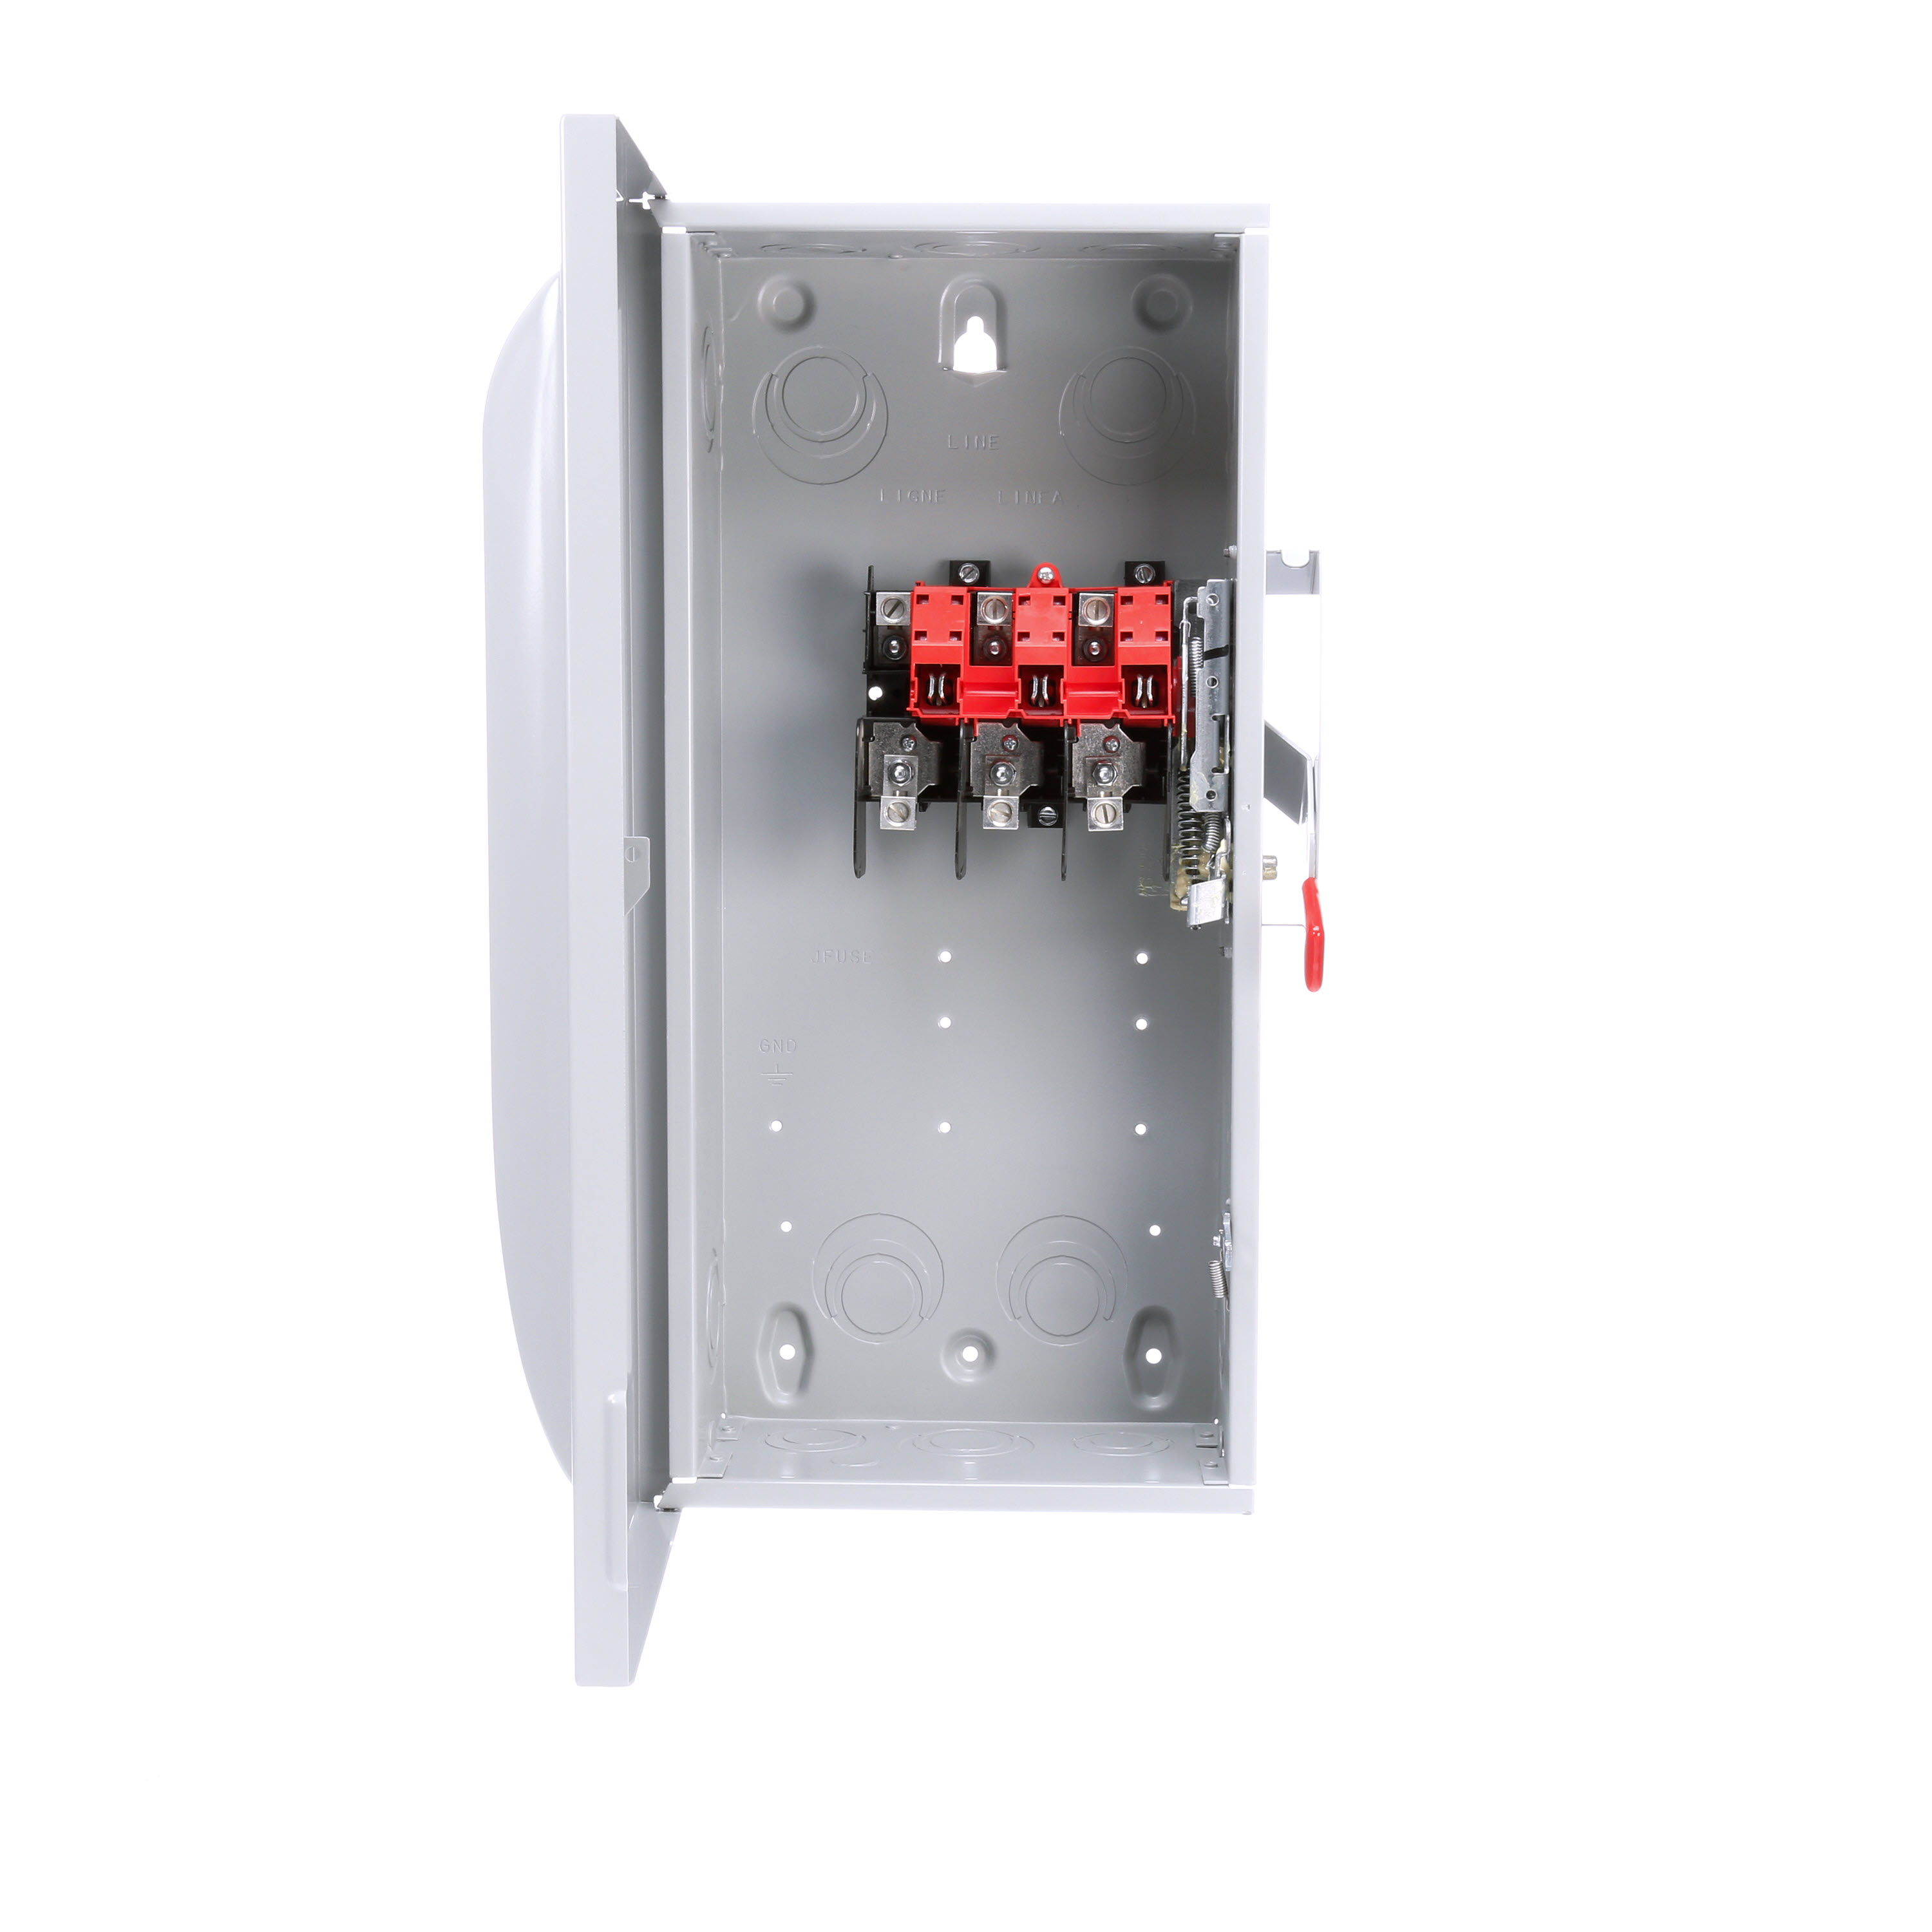 Siemens GNF323 Enclosed General Duty Low Voltage Non-Fused Safety Switch, 240 VAC, 100 A, 15 hp, 20 hp, TPST Contact, 3 Poles